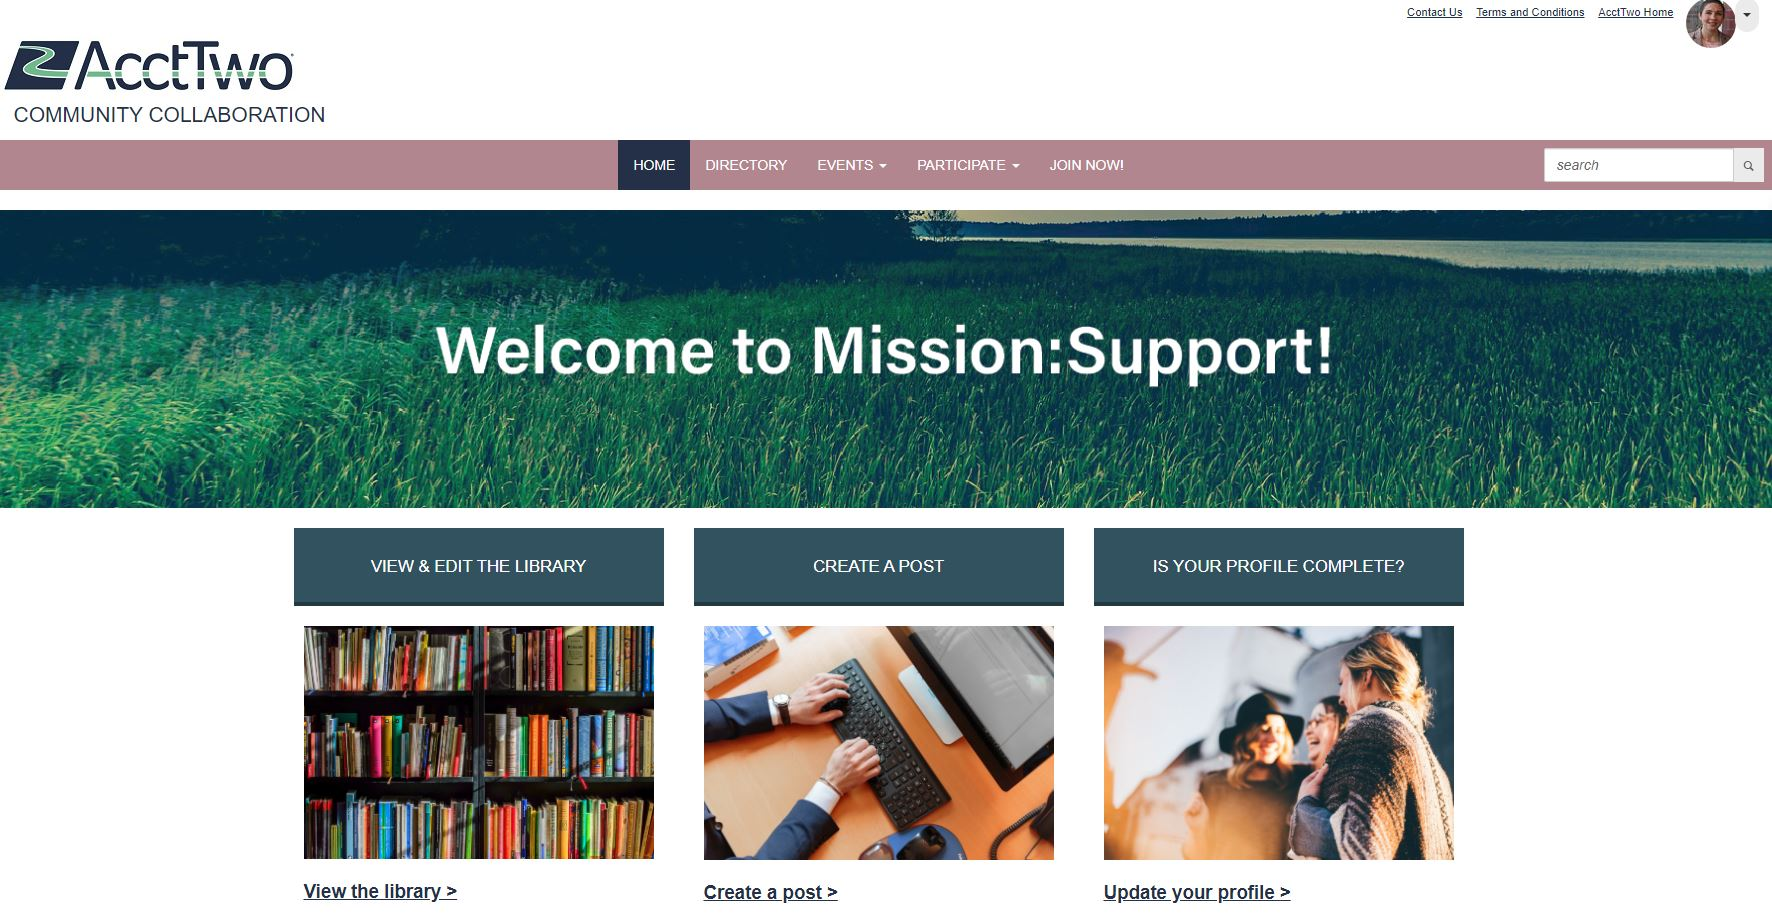 AcctTwo's Mission:Support Community